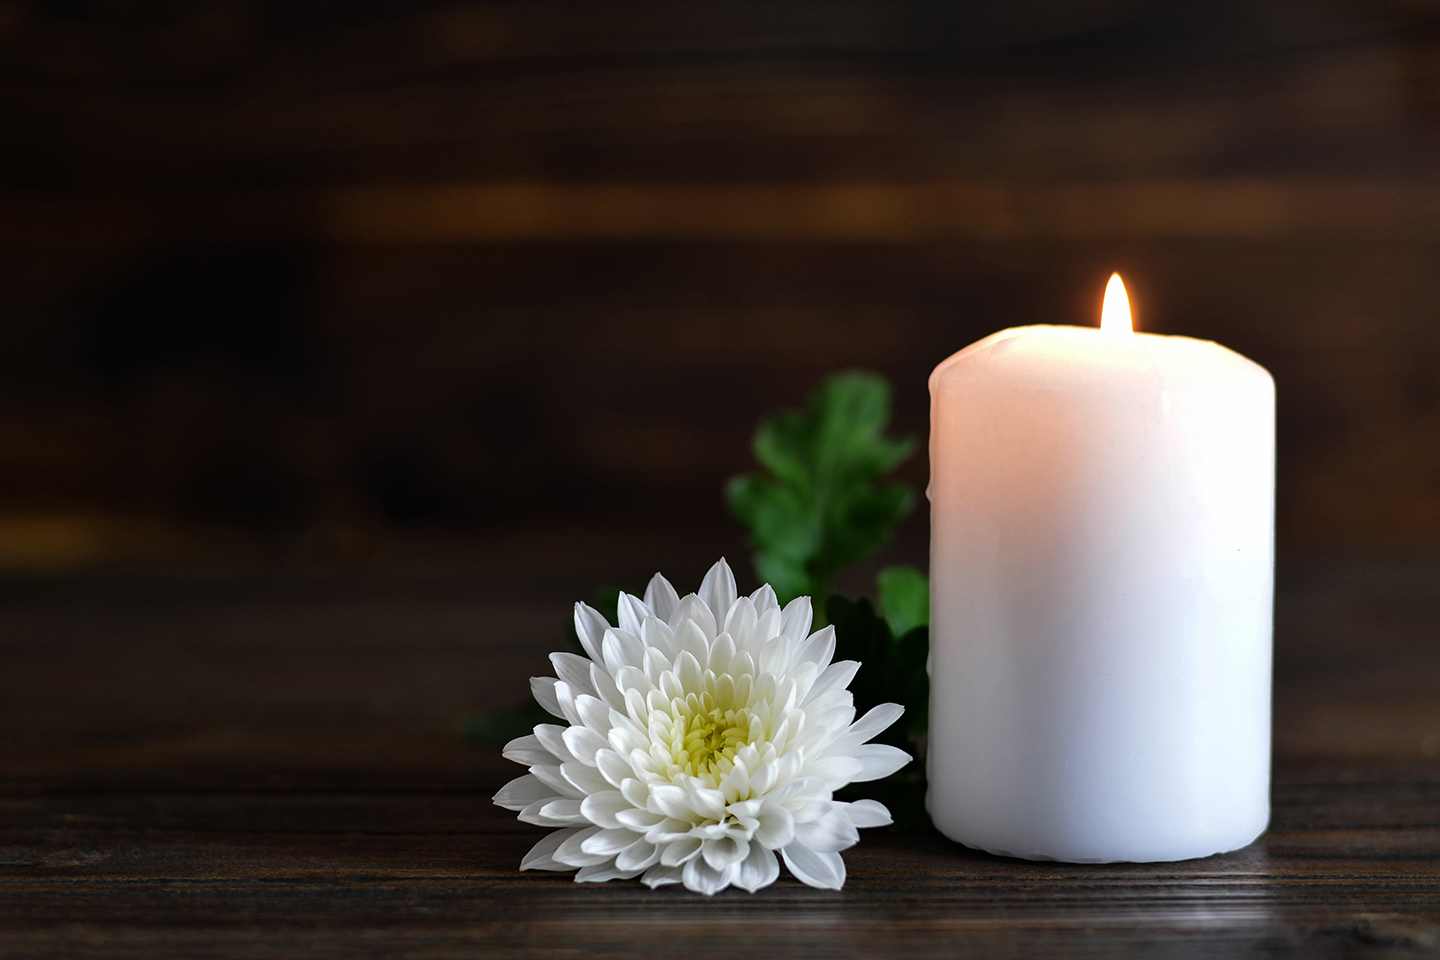 white-flower-and-candle